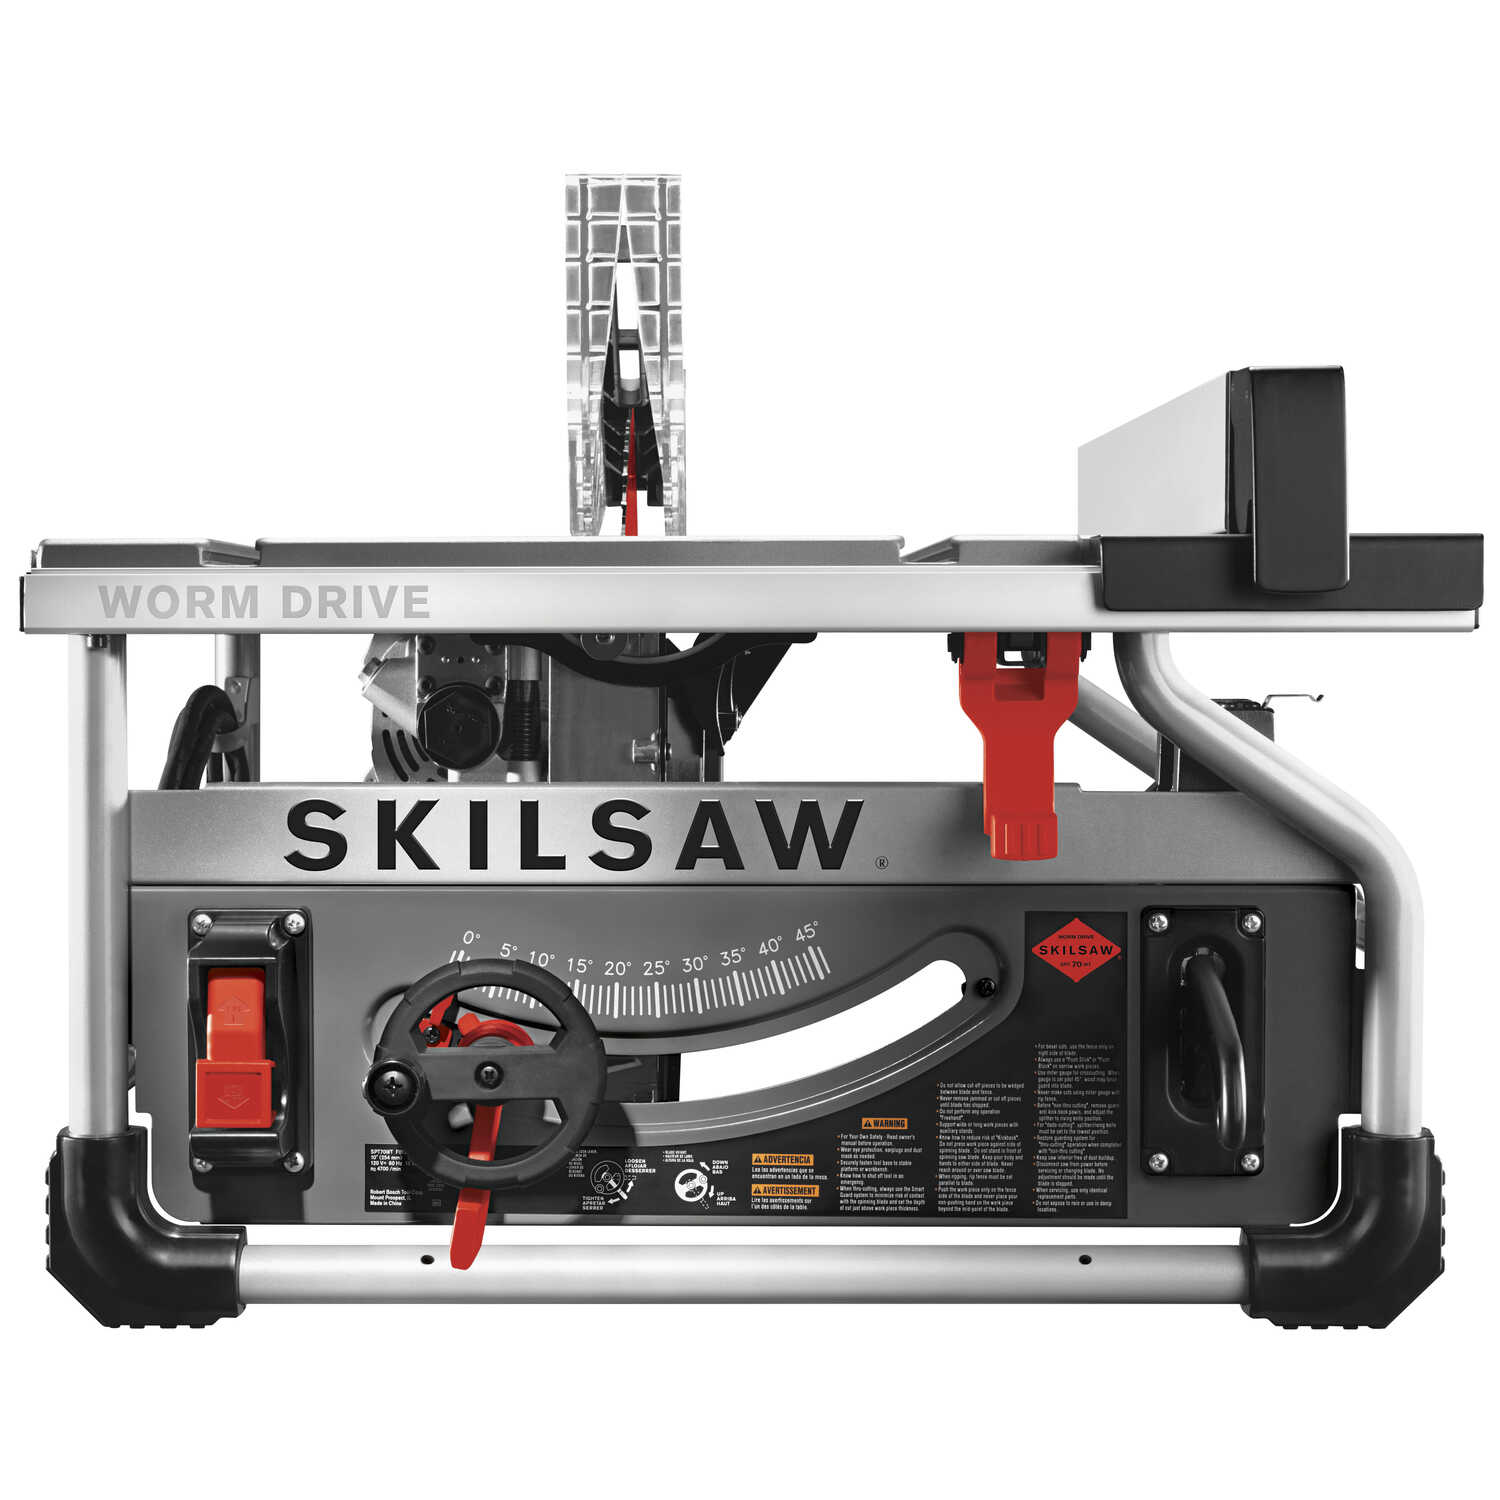 SKILSAW 10 in. Corded Worm Drive Table Saw 15 amps 120 volt 5 hp 5300 rpm